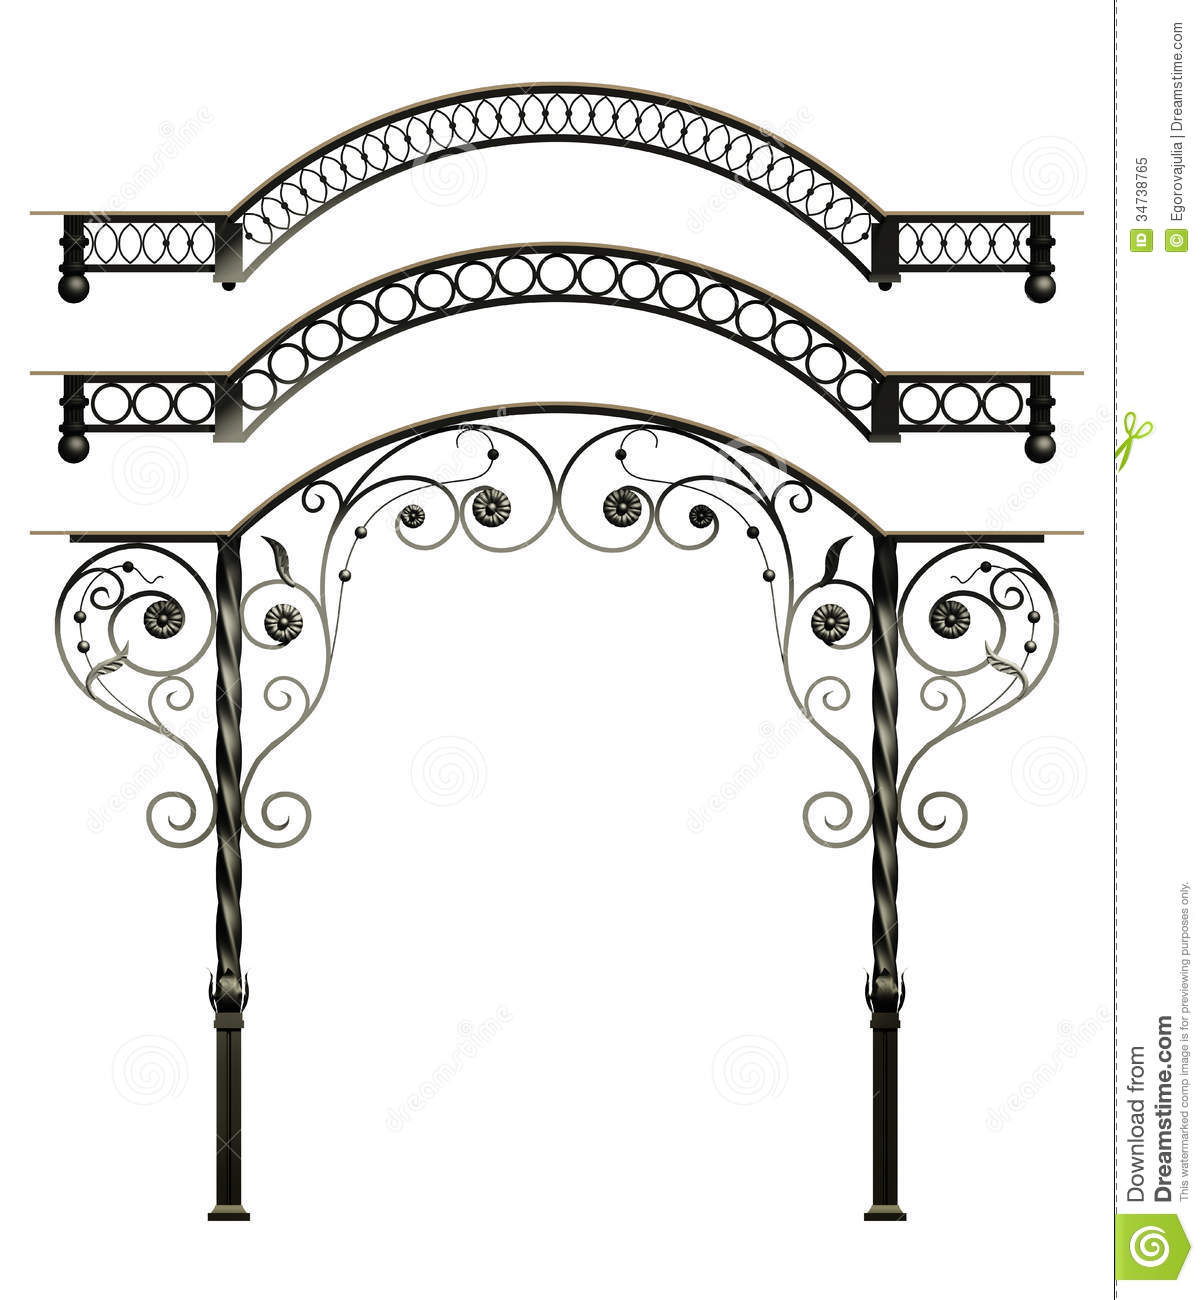 Wrought Iron Canopy Stock Illustration Image Of Canopy